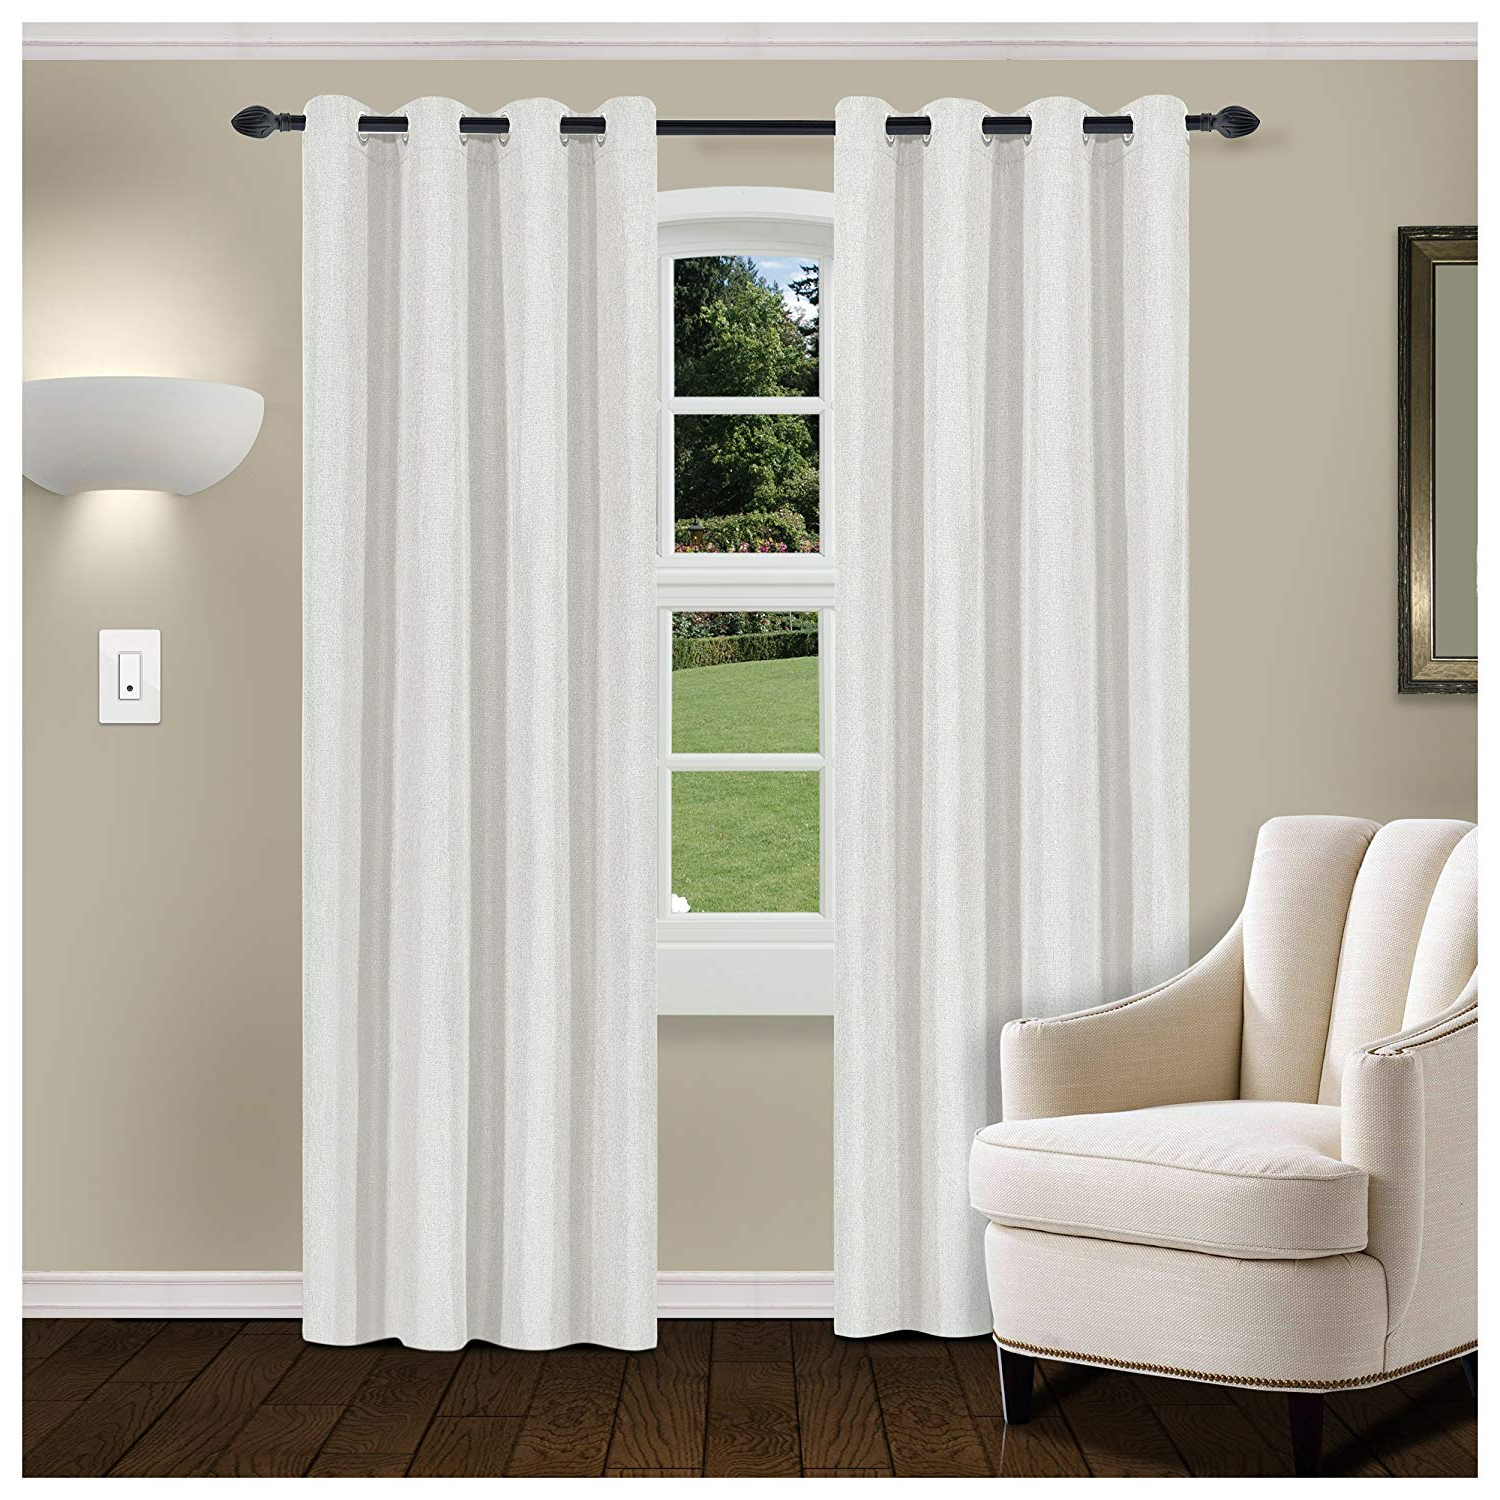 Thermal Textured Linen Grommet Top Curtain Panel Pairs In Recent Superior Linen Textured Blackout Curtain Set Of 2, Thermal Insulated Panel  Pair With Grommet Top Header, Classic Natural Look Room Darkening Drapes, (View 19 of 20)